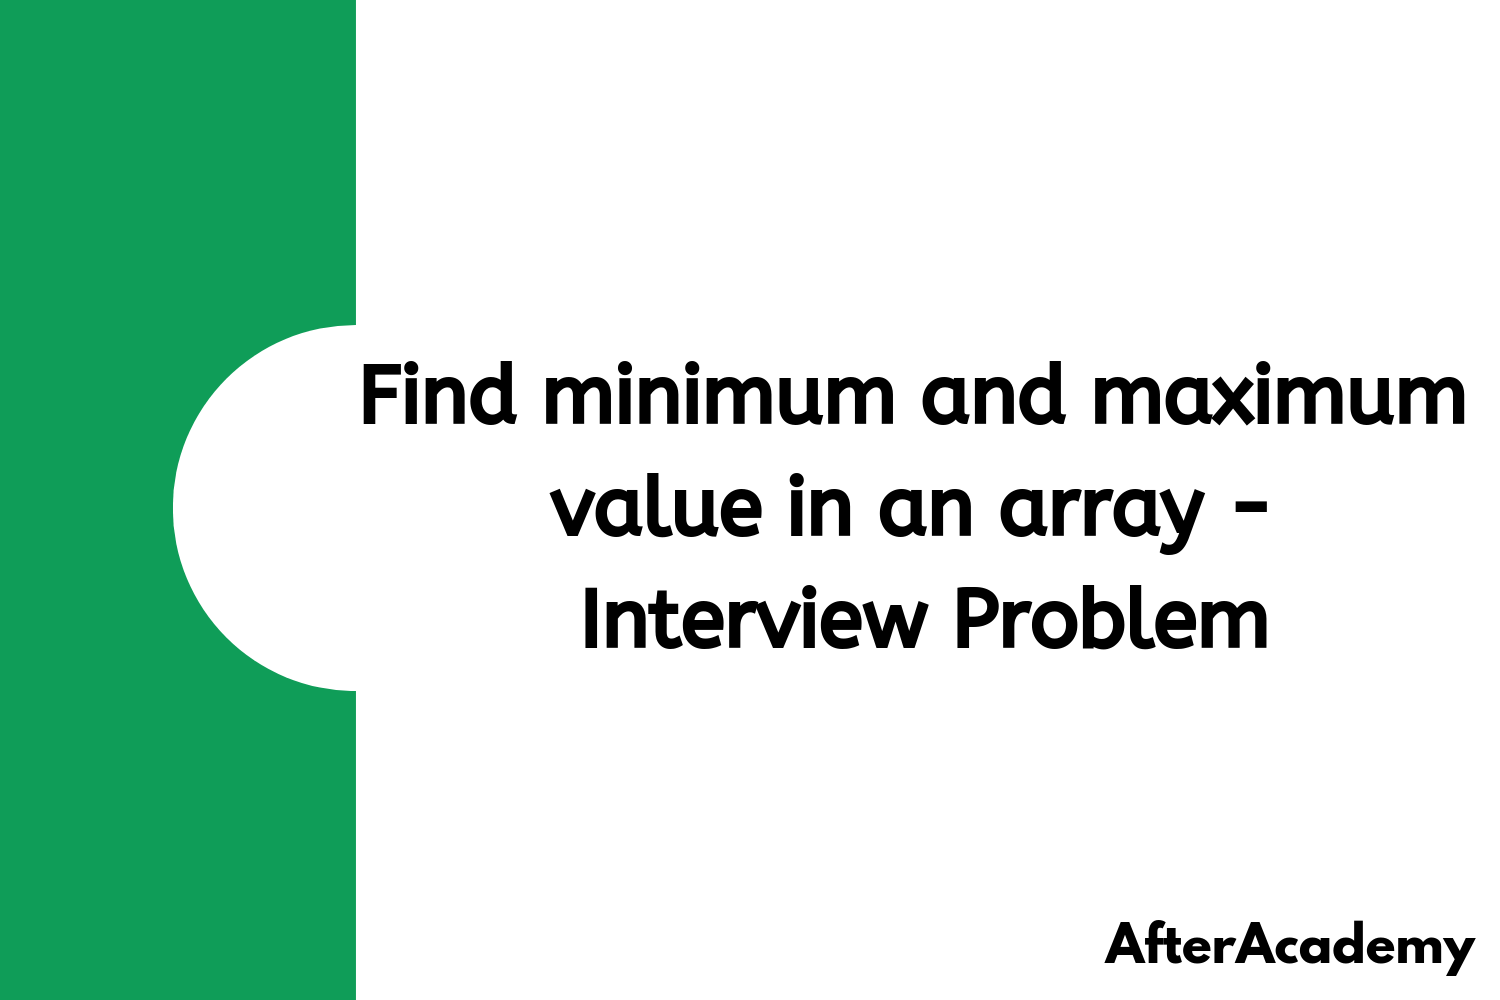 Find minimum and maximum value in an array - Interview Problem